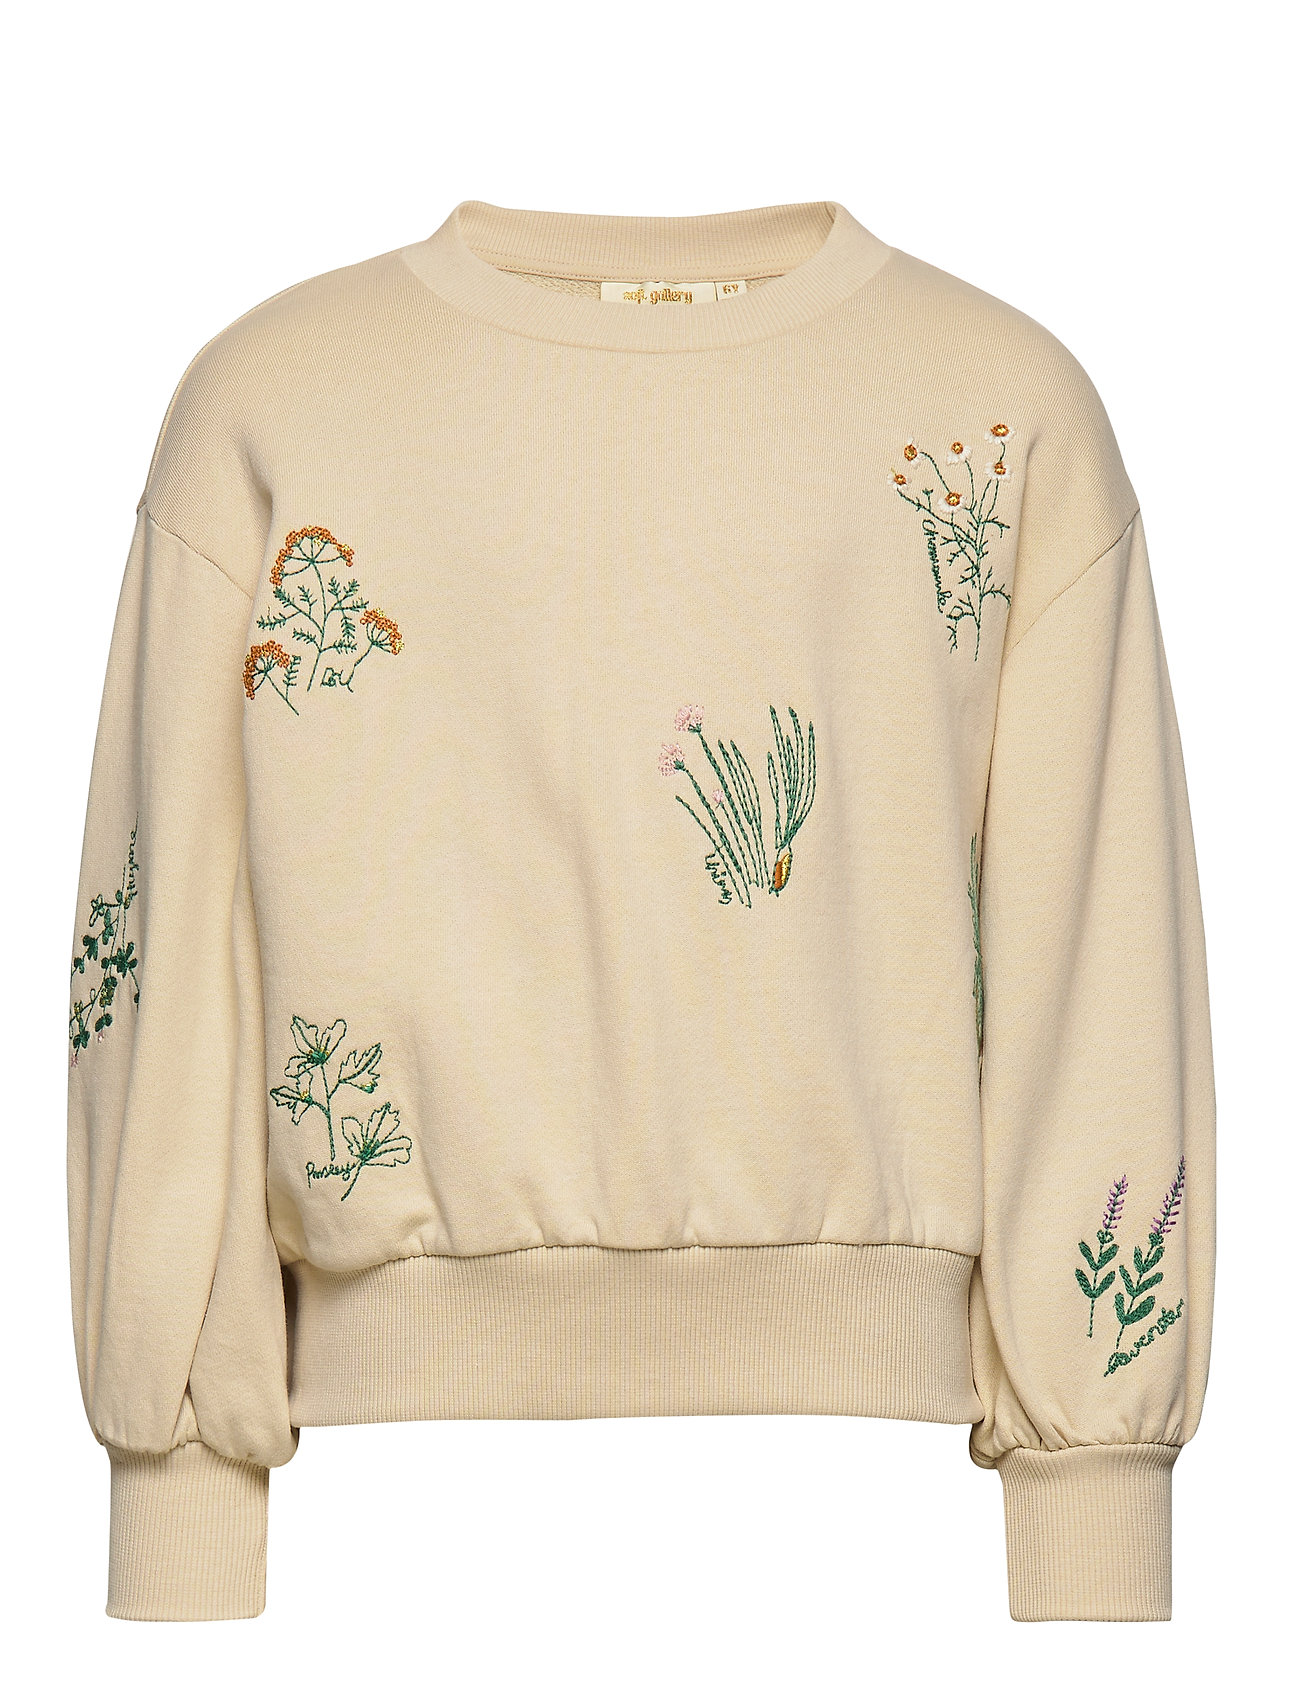 Soft Gallery Elvira Sweatshirt - SEEDPEARL, HERBS EMB